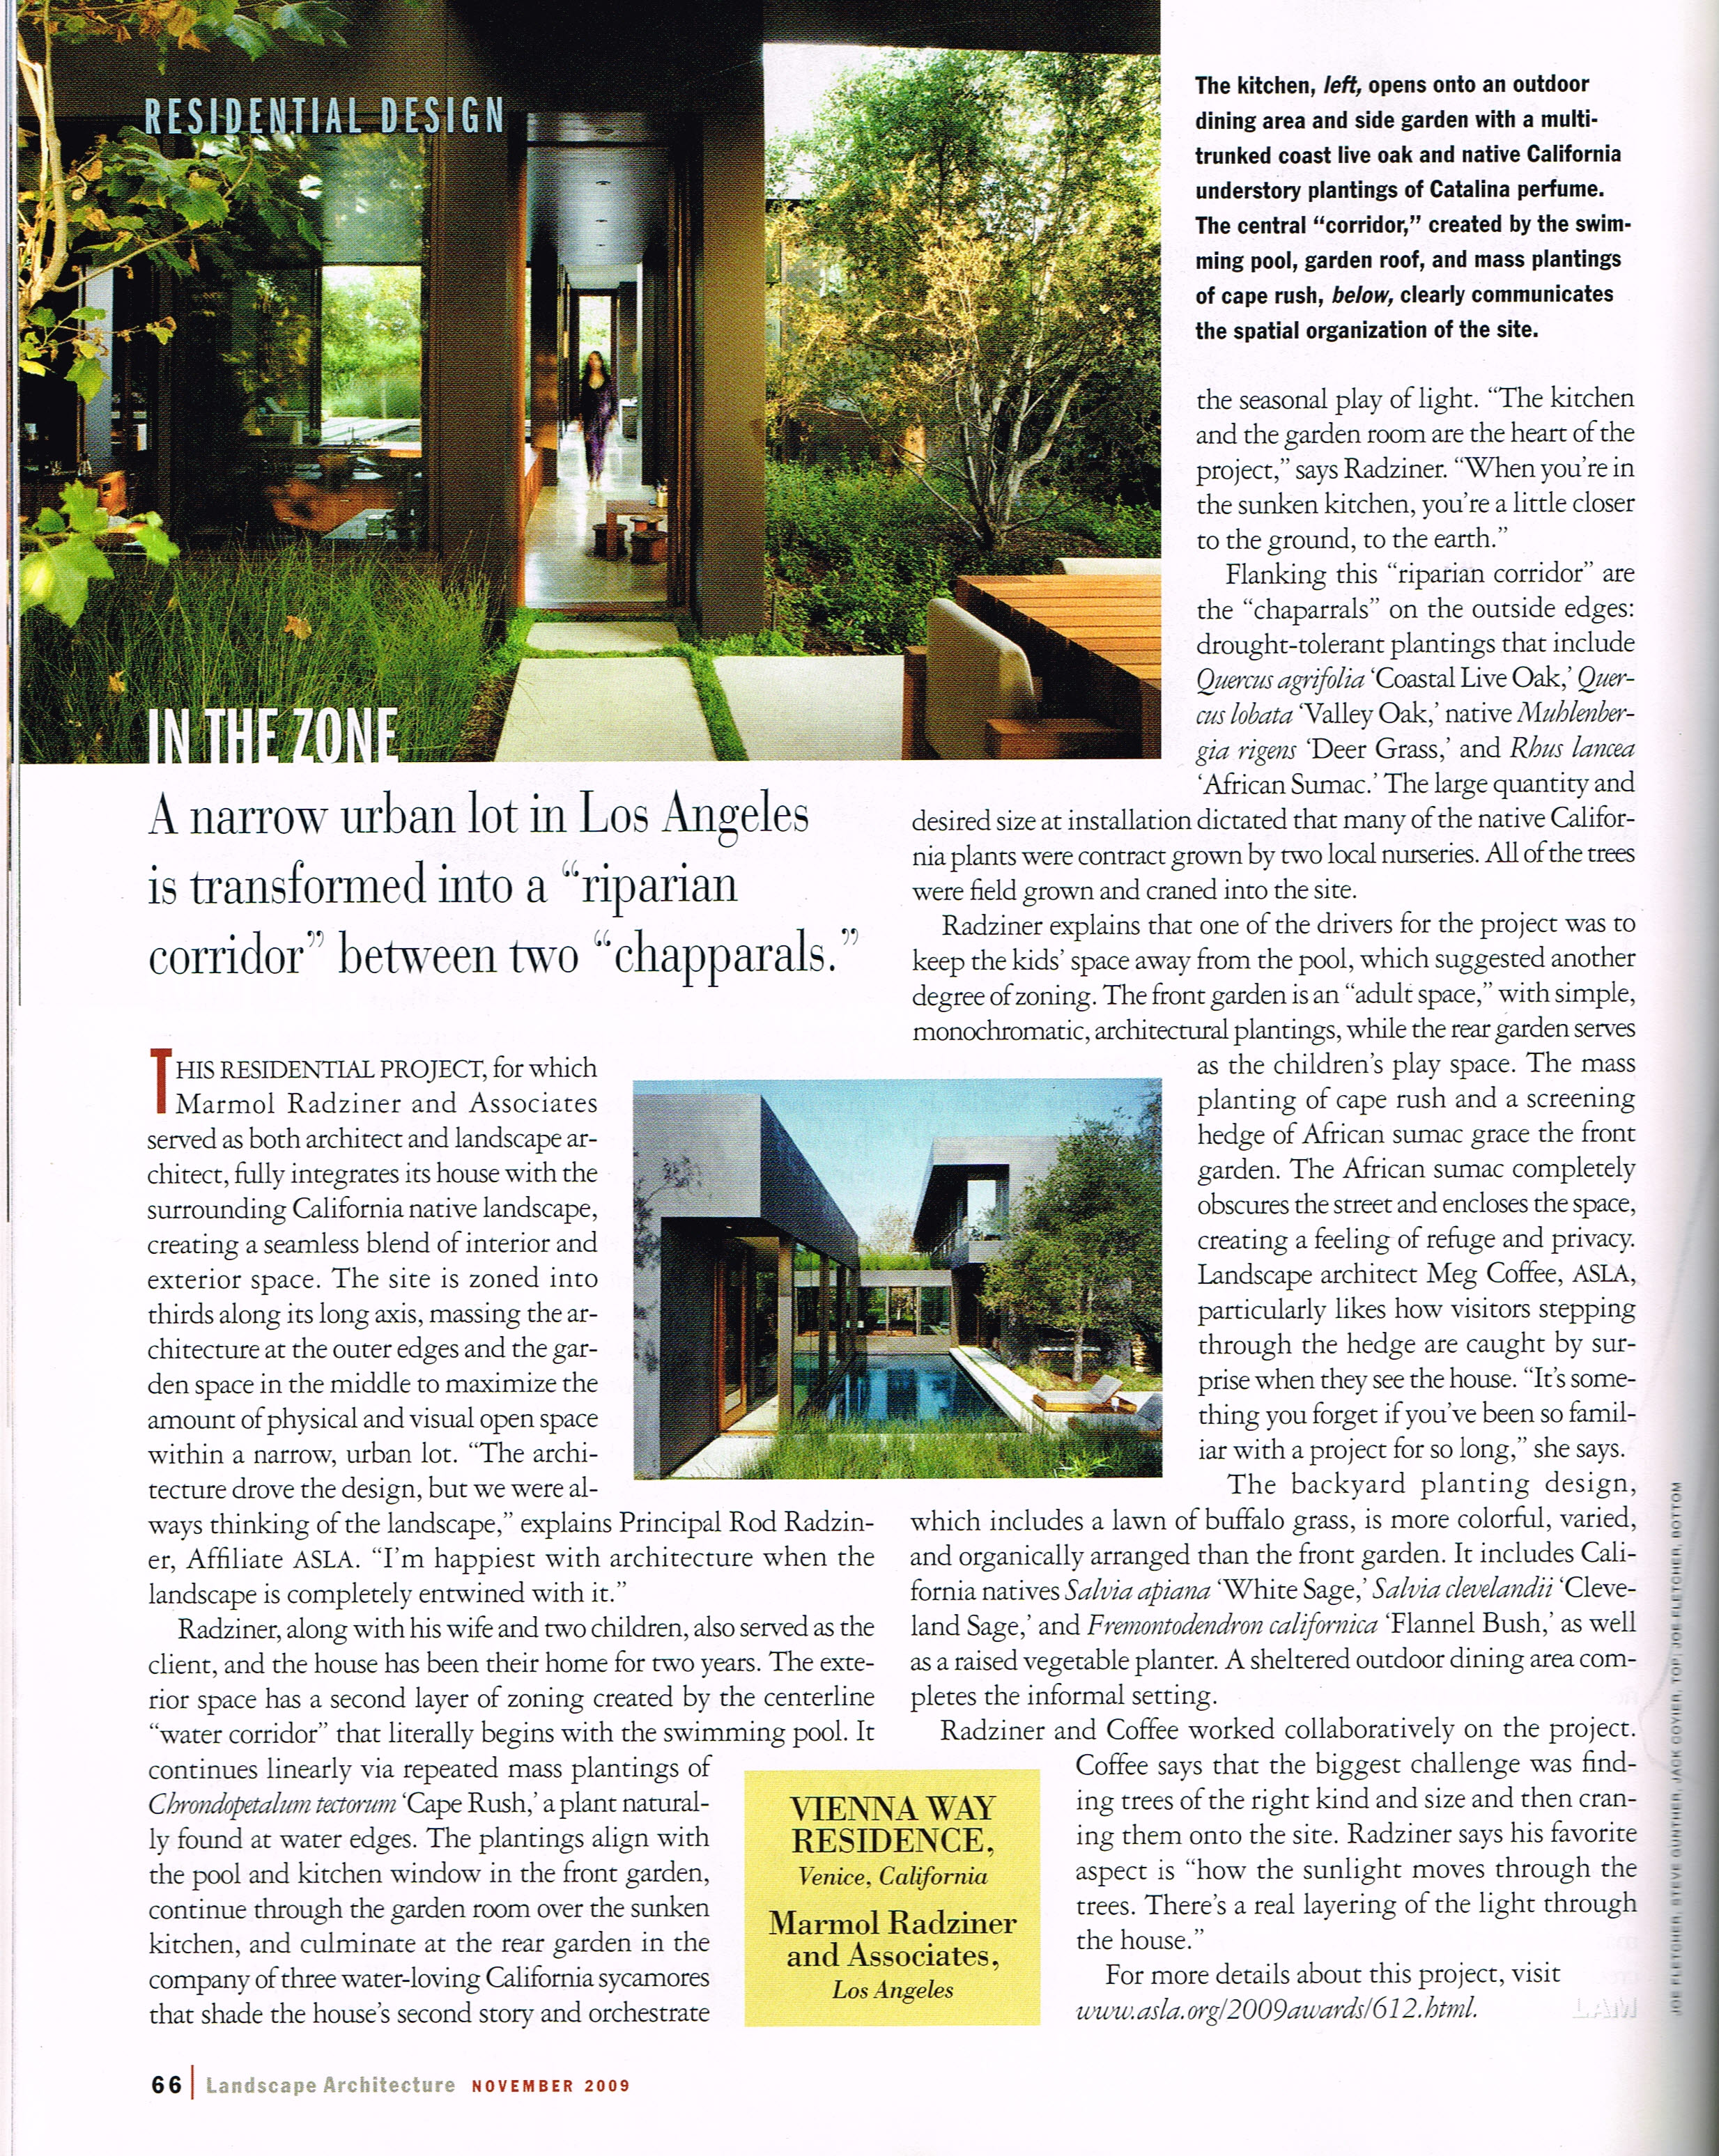 Landscape Architecture Magazine - Nov 2009